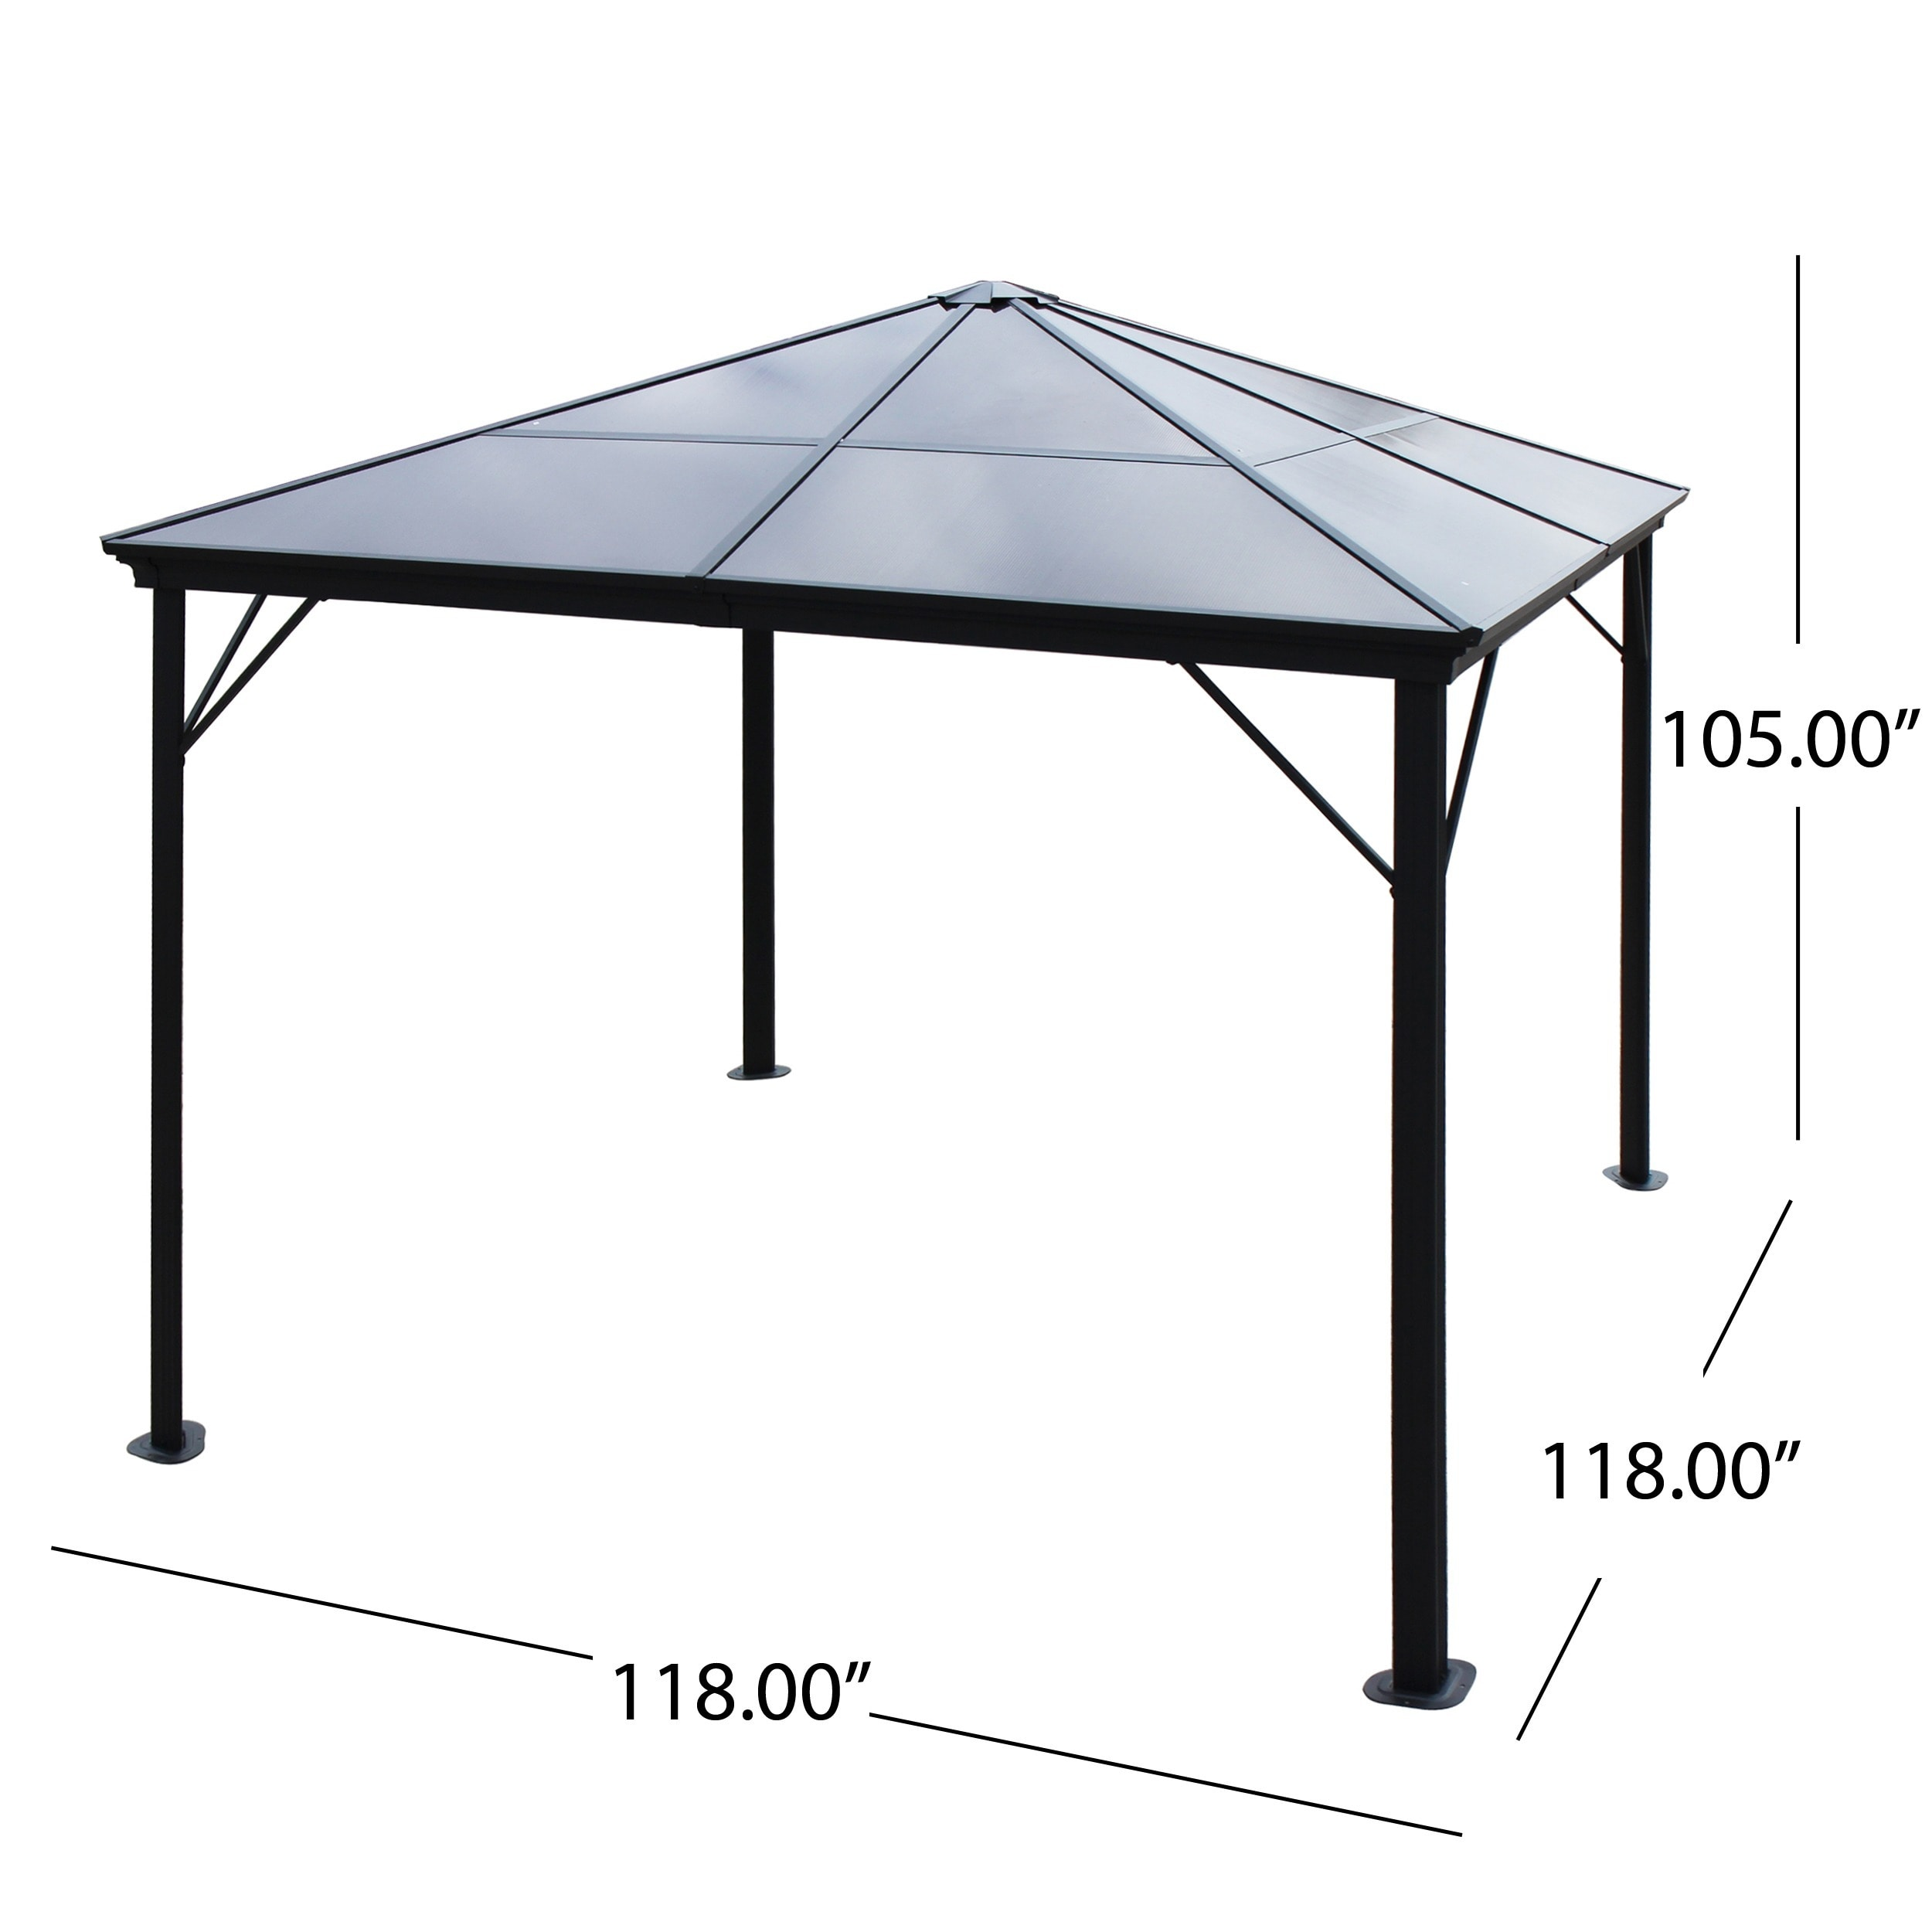 Bailey Outdoor 10 ft. Aluminum Gazebo with Hardtop by Christopher Knight on